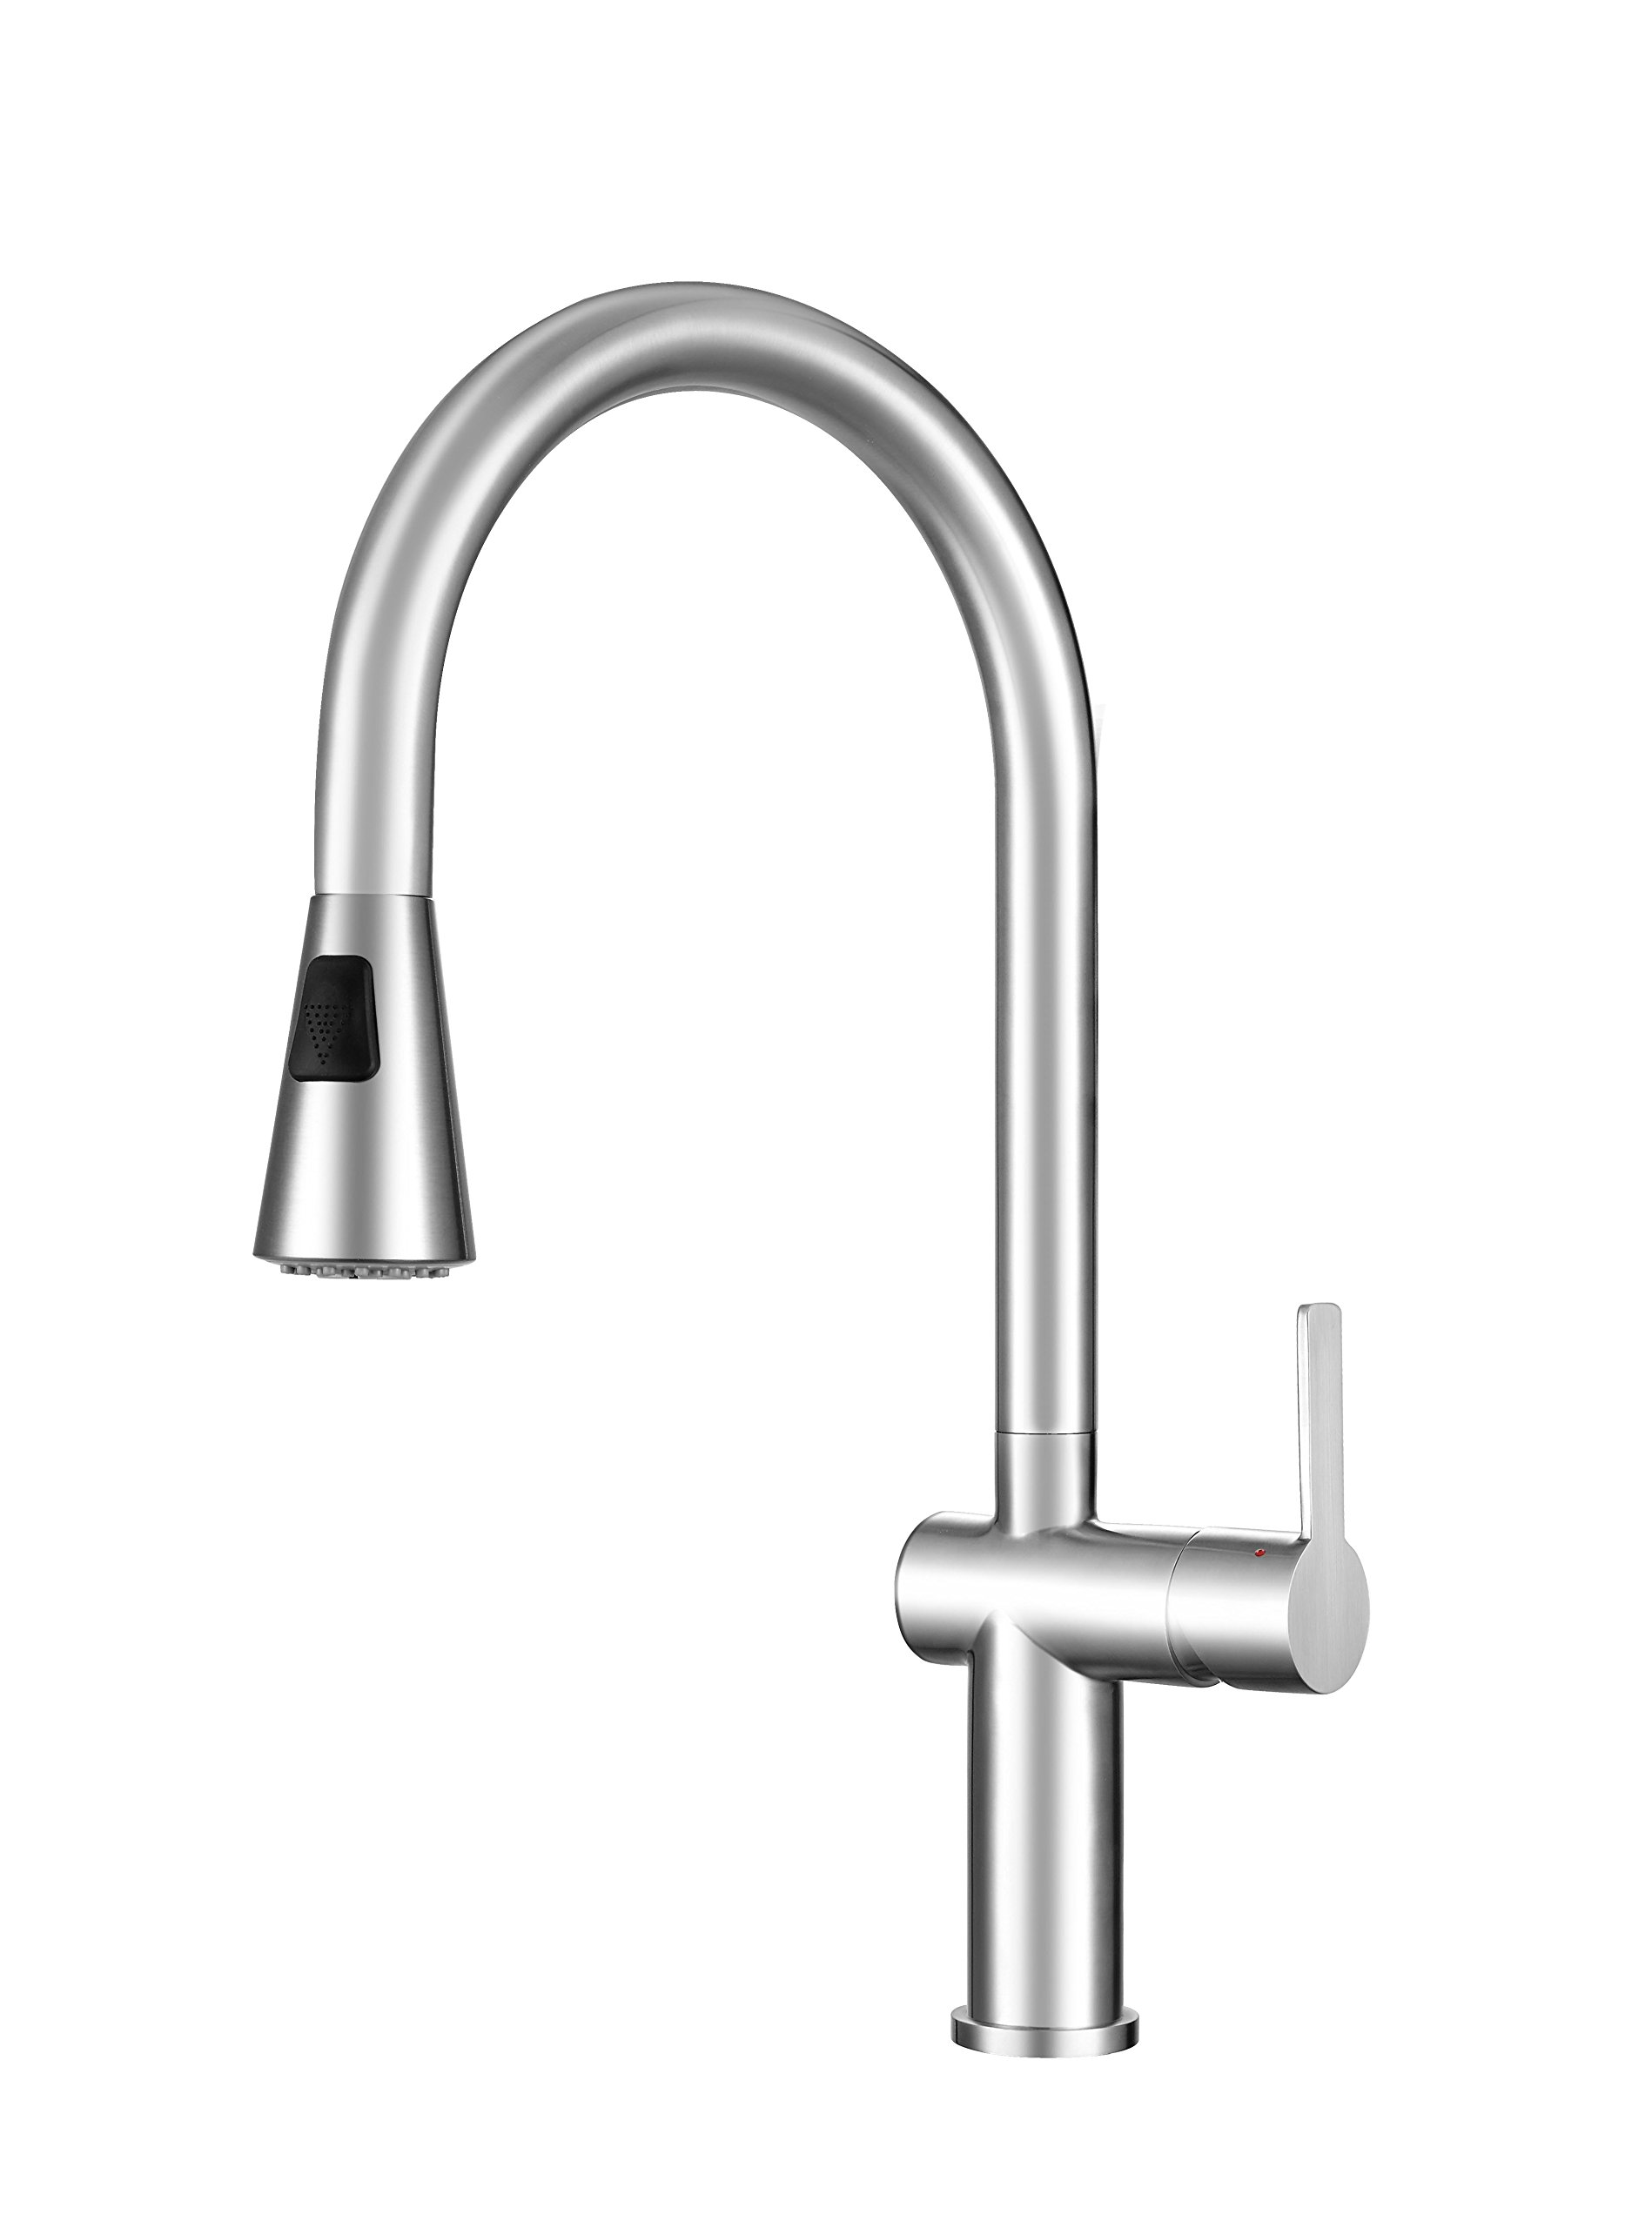 Franke FF20750 Bern Single Handle Pull-Down Kitchen Faucet with Fast-in Installation System, Stainless Steel